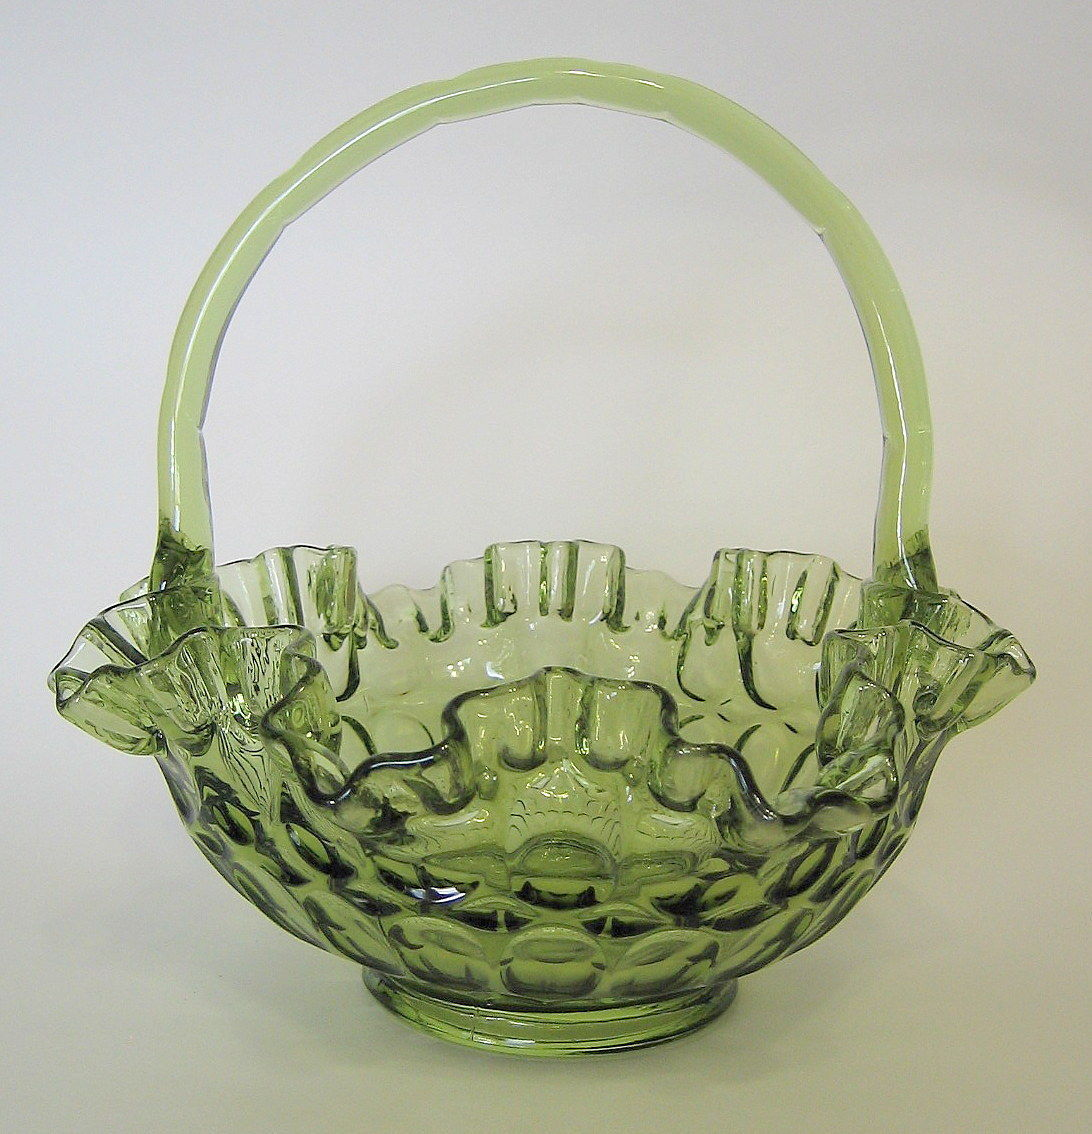 Pottery & Glass Art Glass Vintage Fenton Art Glass Crimped Basket Colonal Green Thumbprint